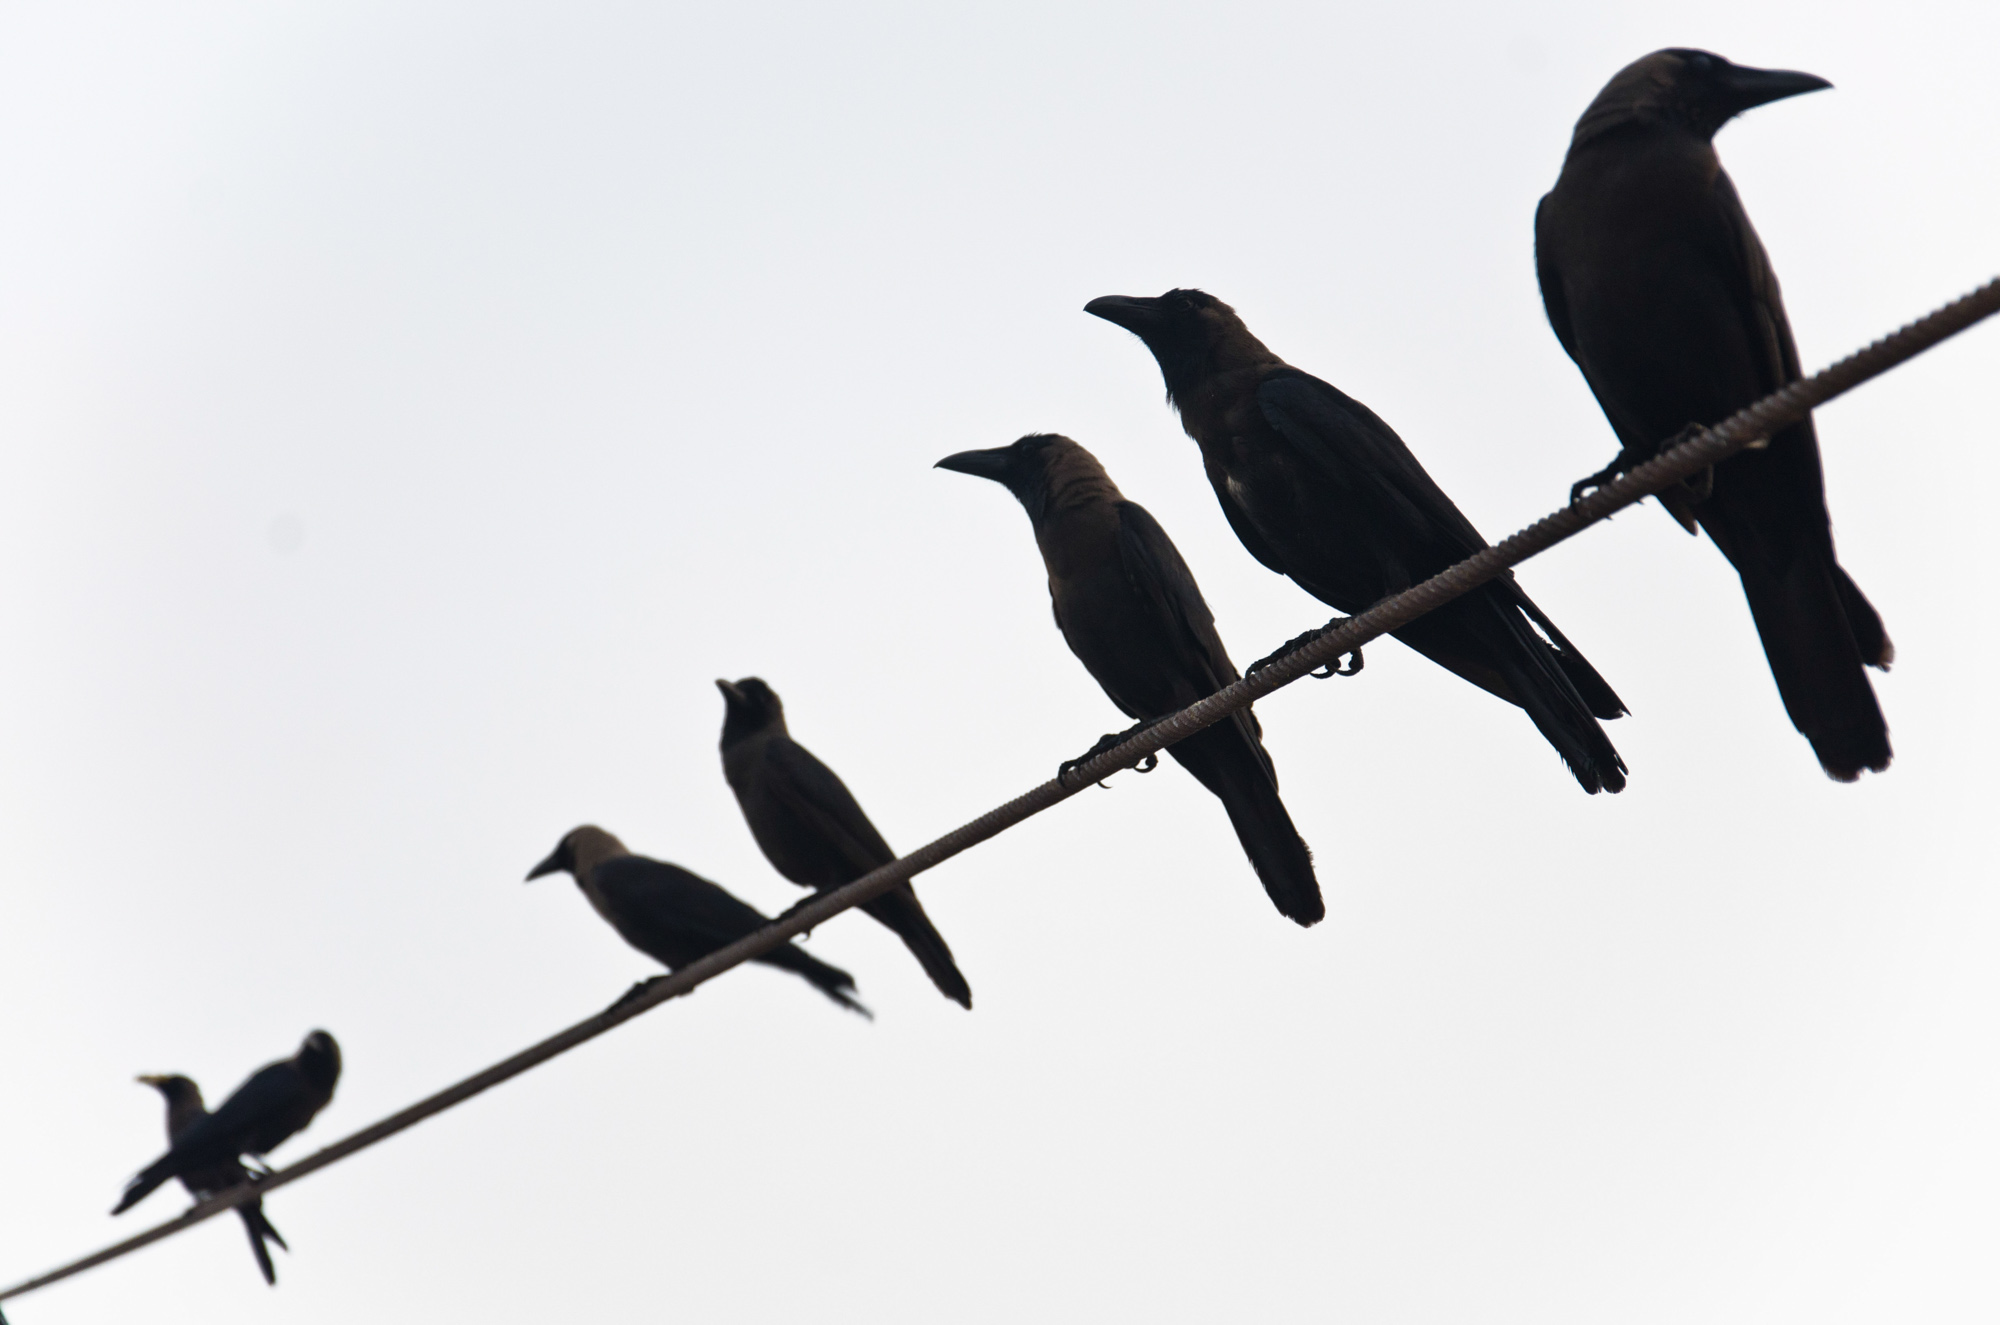 Crows_on_a_Line